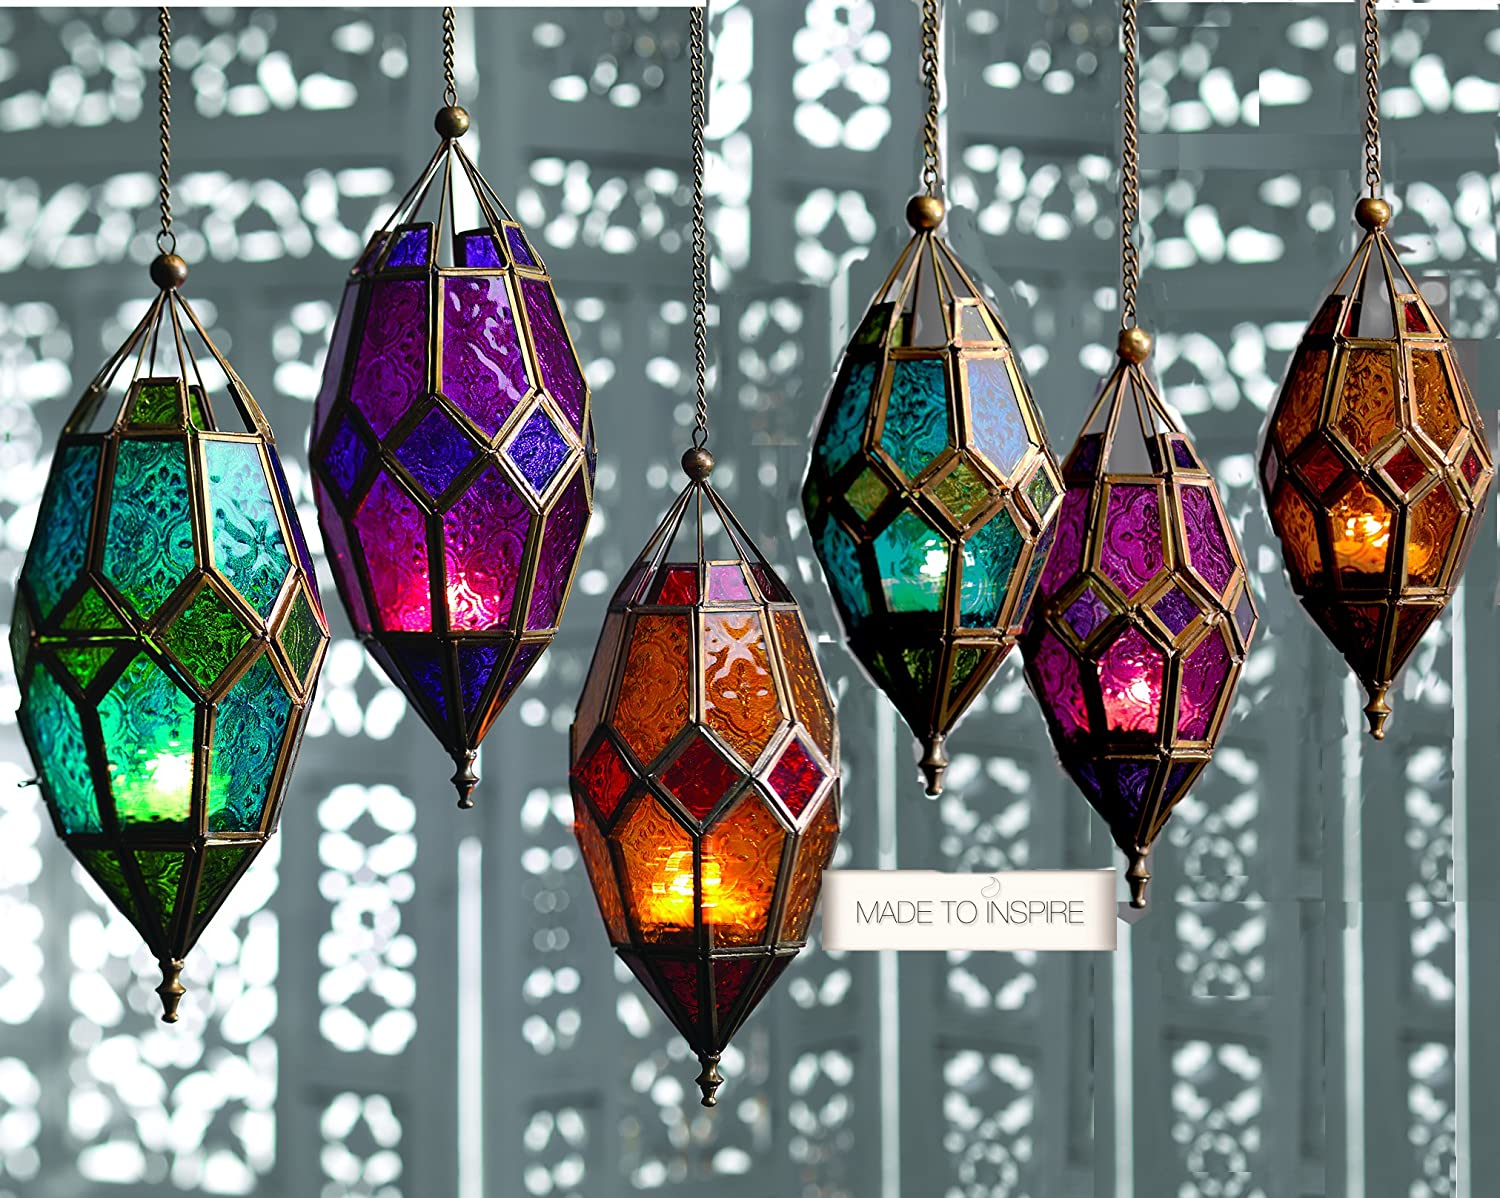 Authentic Moroccan Tonal Glass Hanging Lantern Tealight Holder (Small Green) Made To Inspire